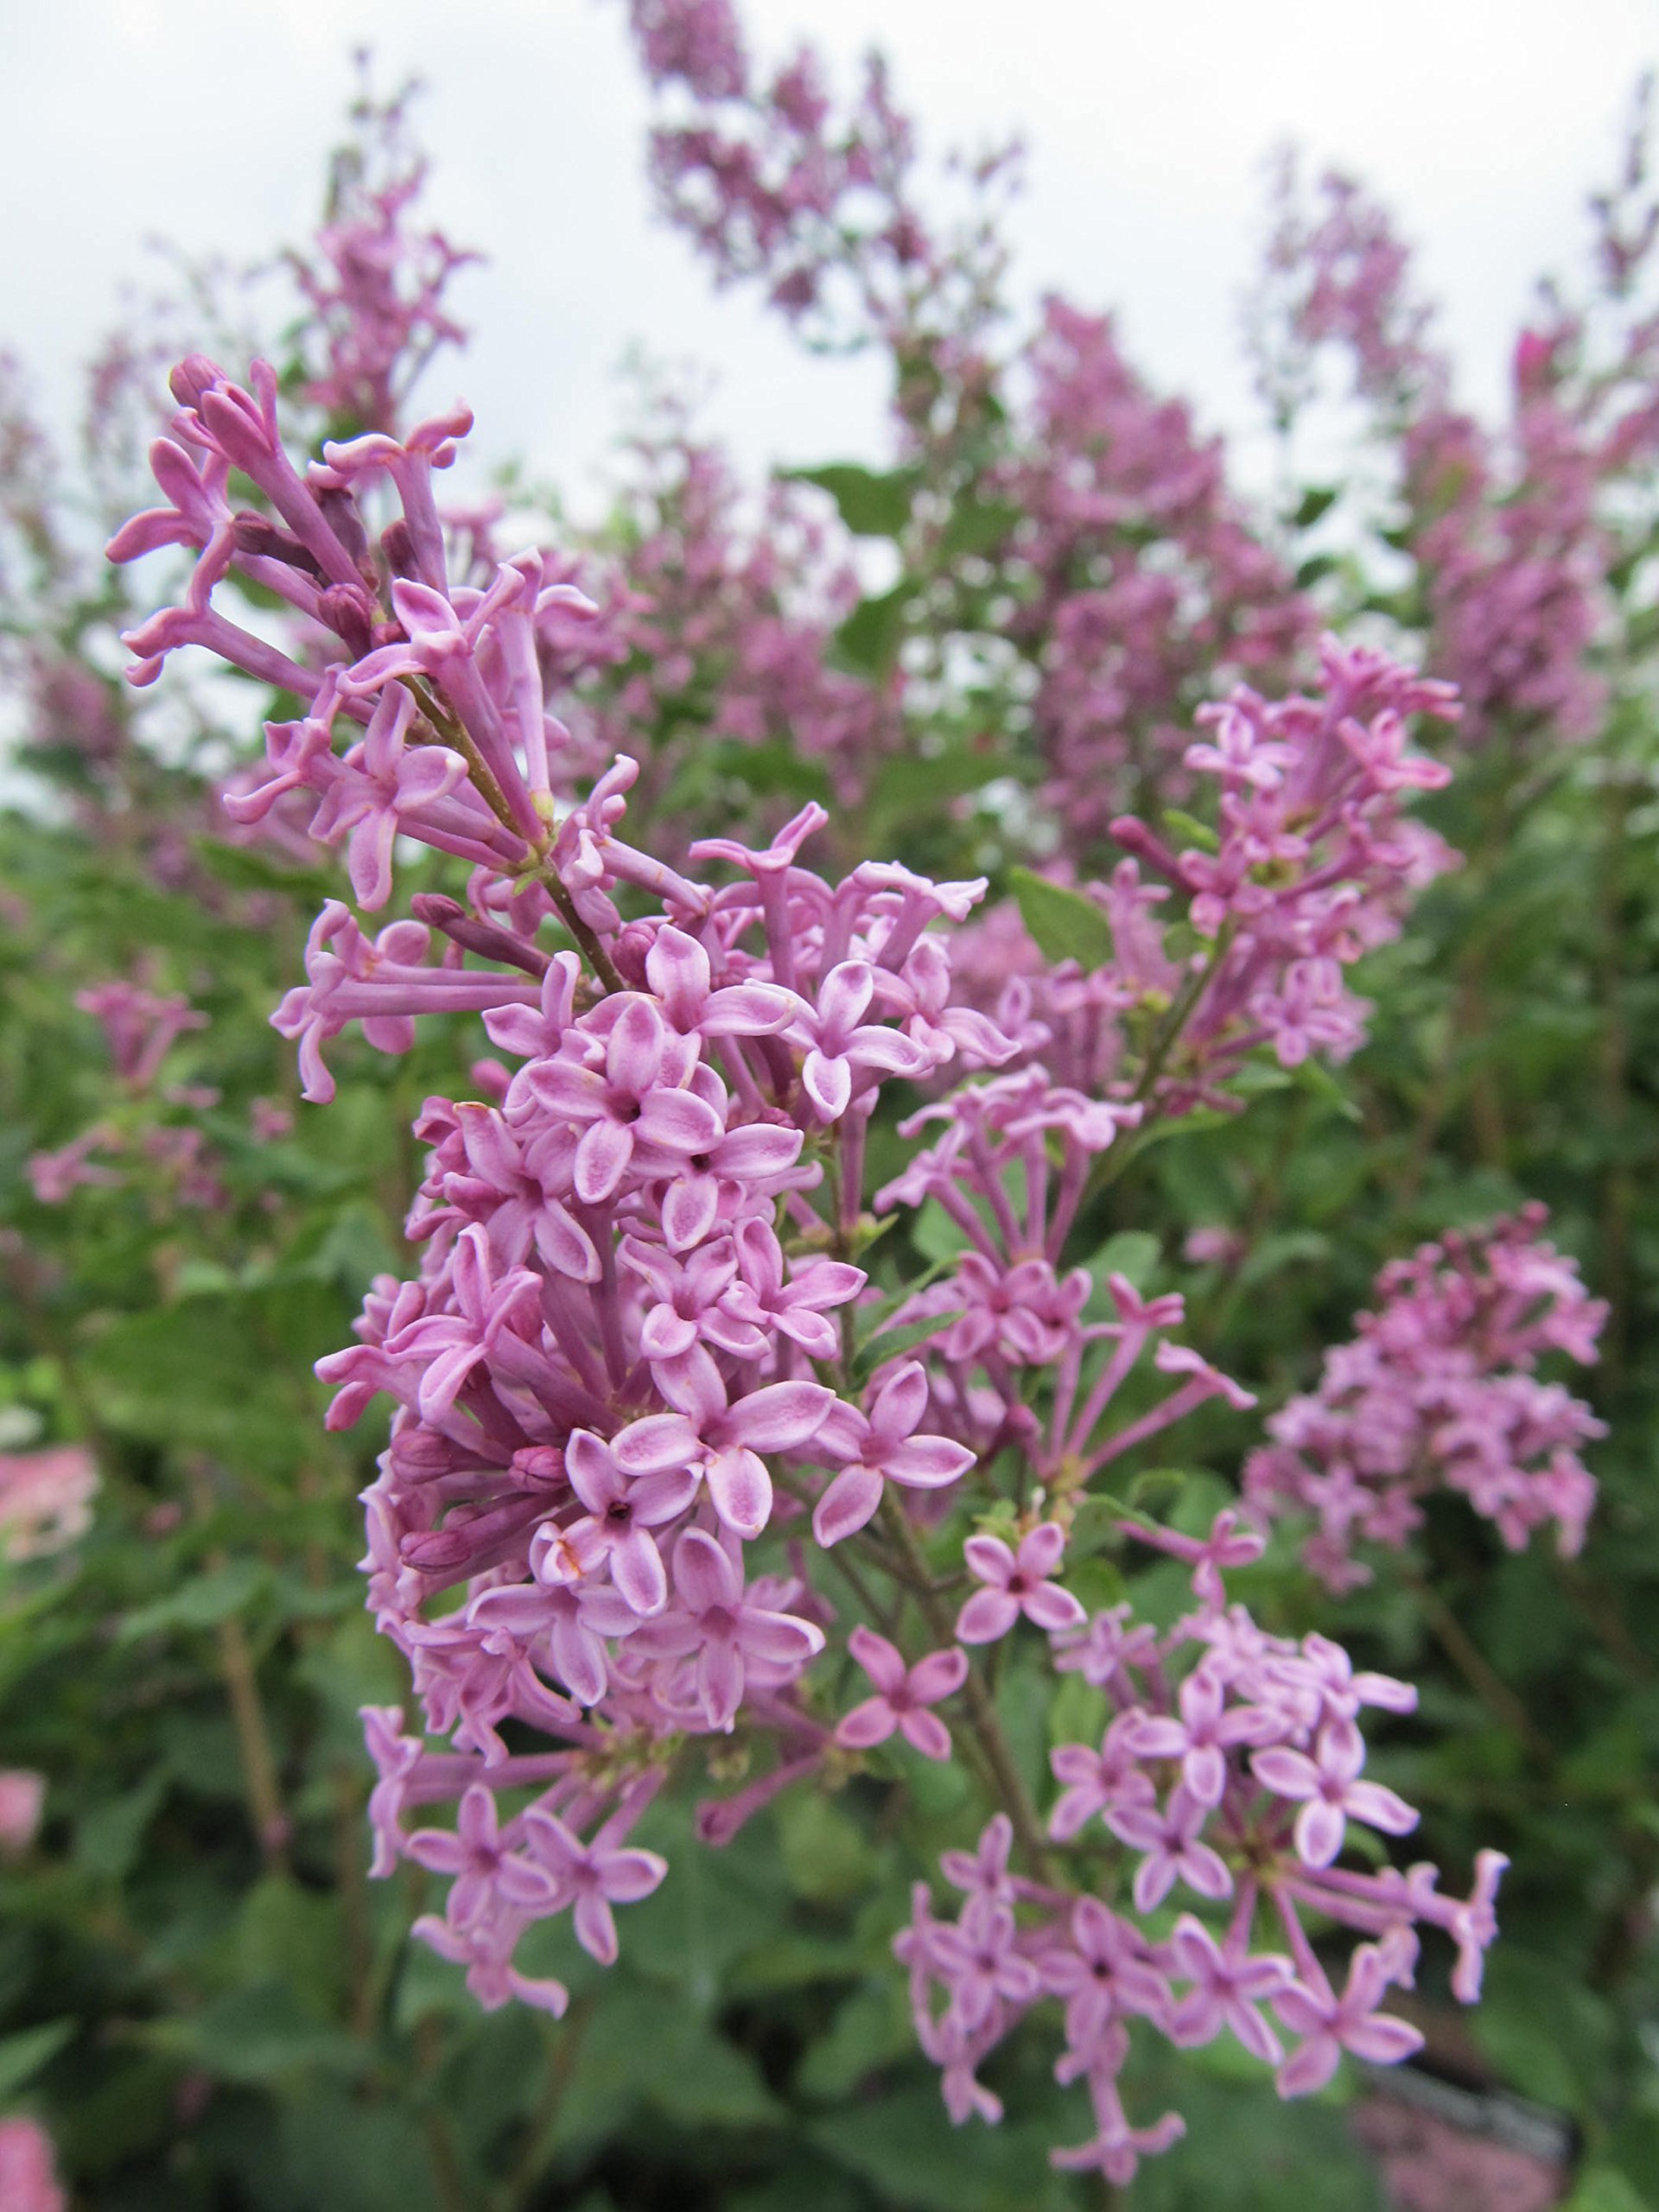 Proven Winners - Syringa x Bloomerang Purple (Reblooming Lilac) Shrub, Purple Flowers, 3 - Size Container by Green Promise Farms